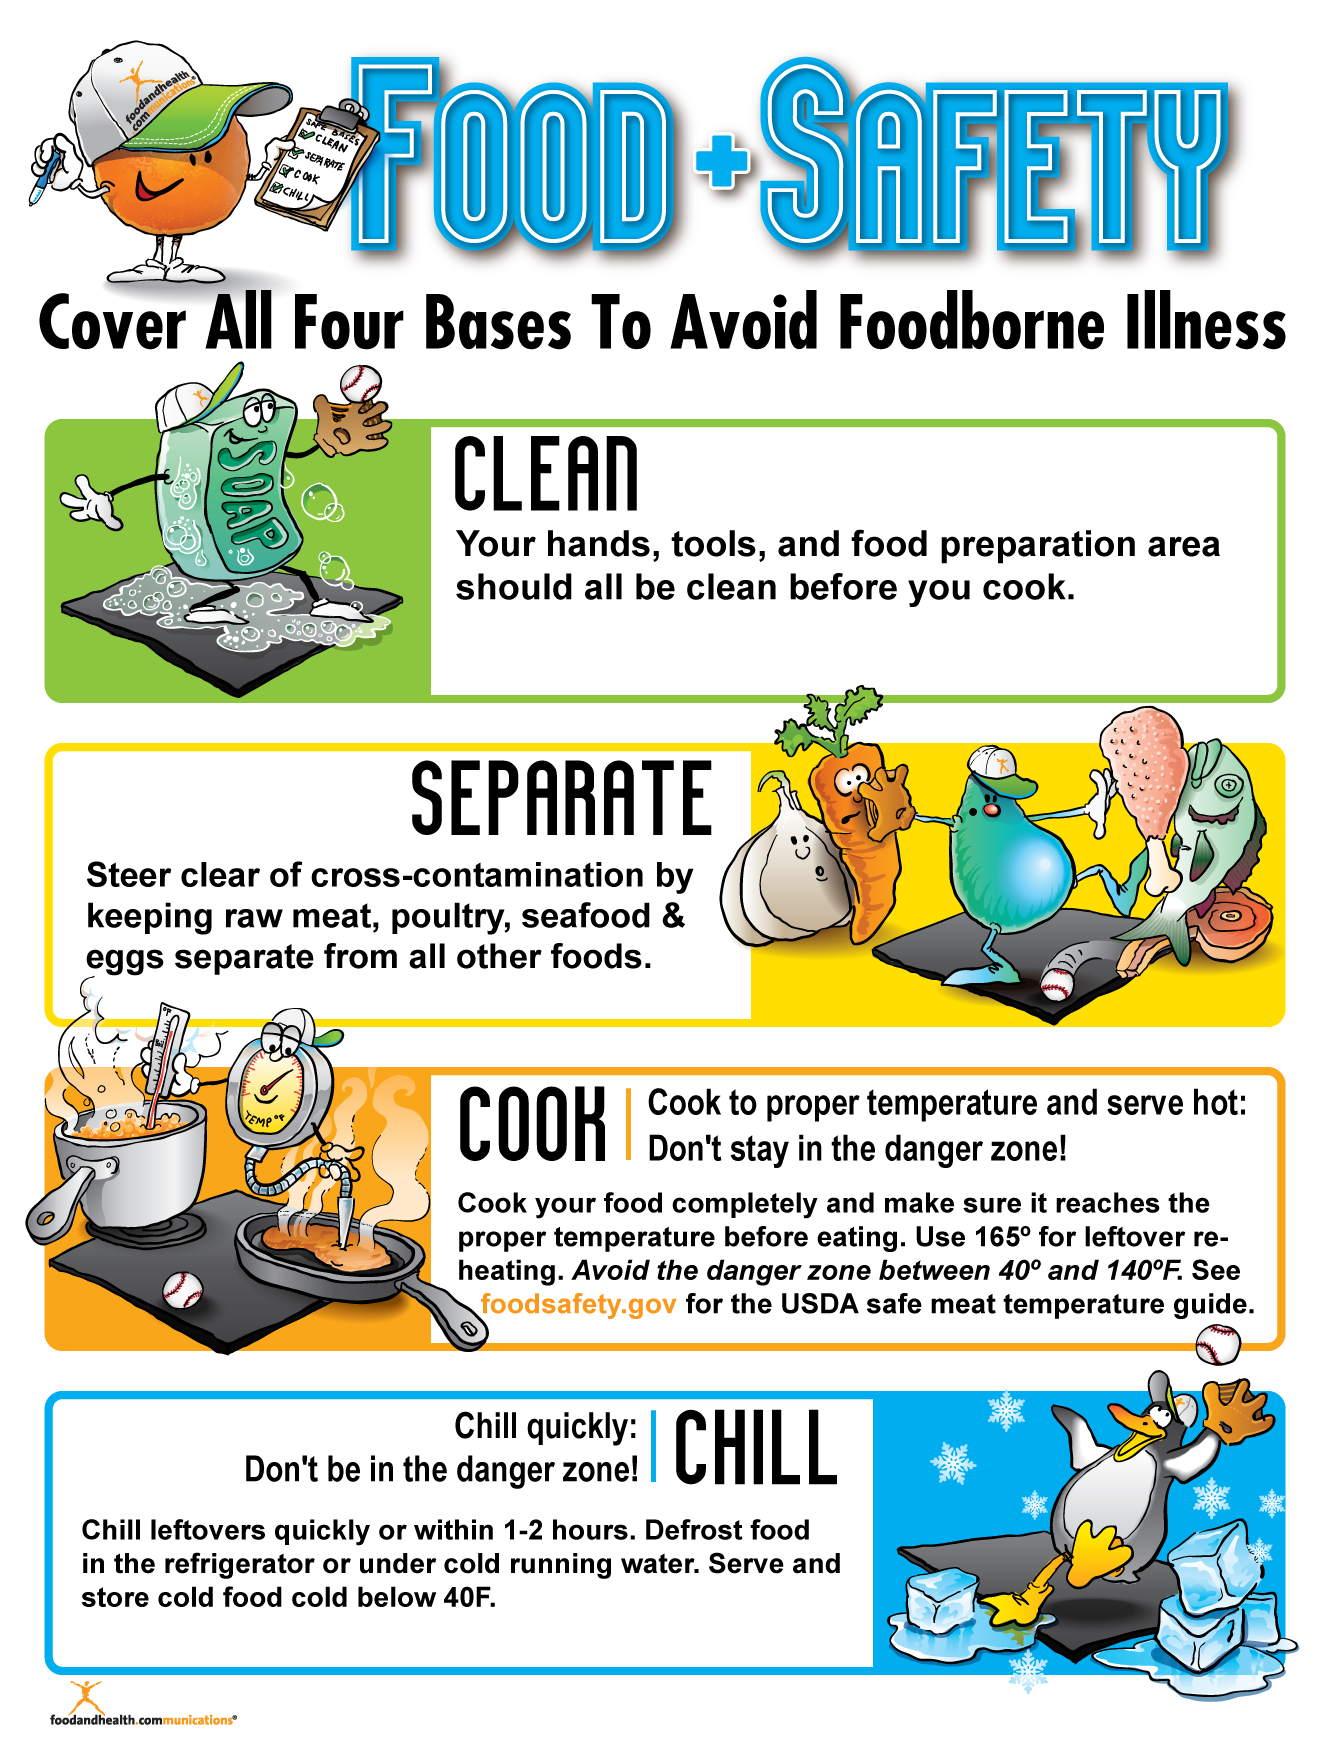 Which Storage Method May Cause Tcs Food To Become Unsafe Unique Food Safety Poster  Pinterest  Food Safety Safety Posters And Safety